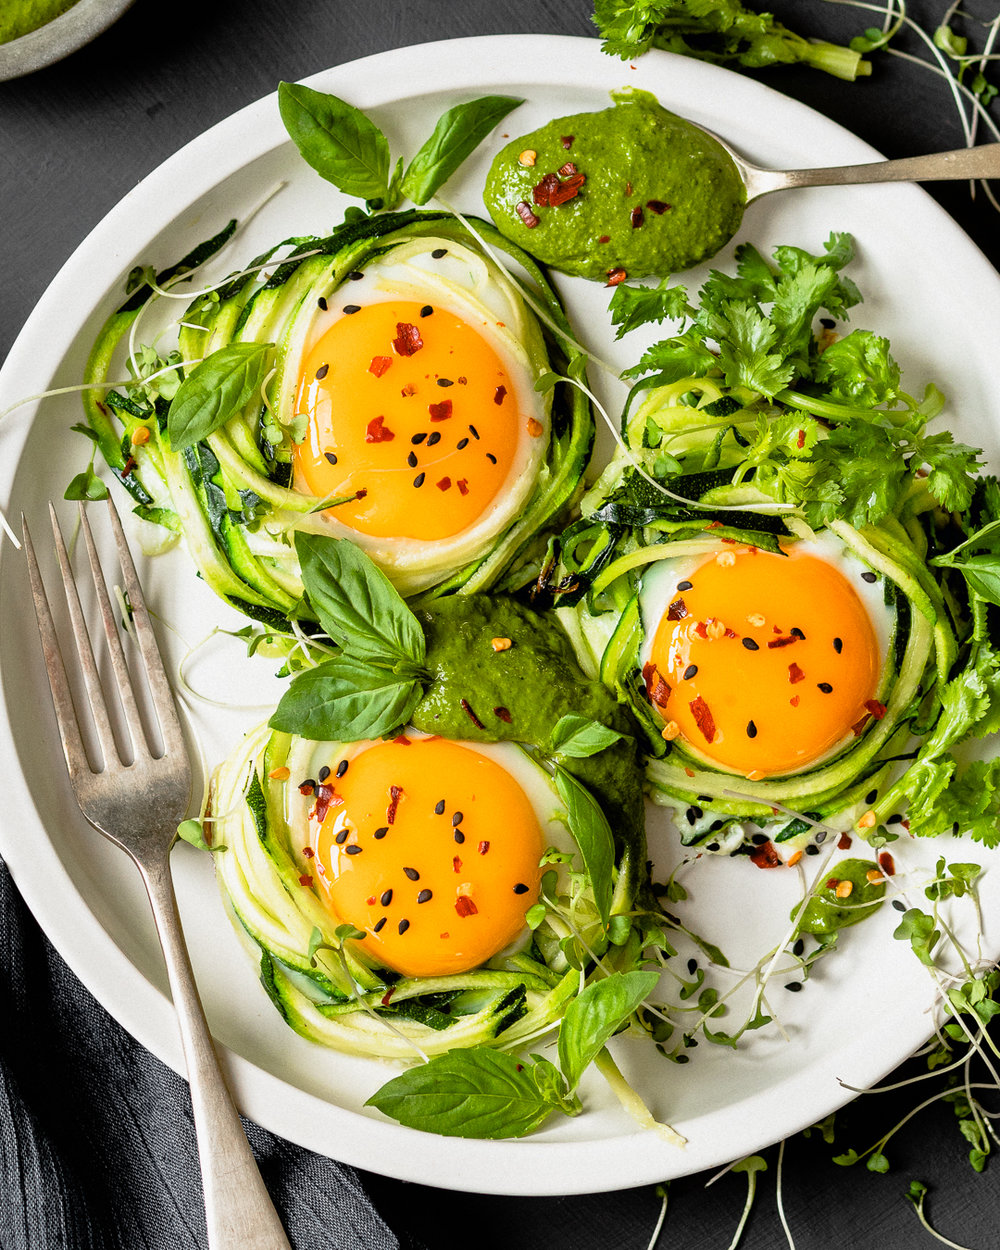 Zucchini_egg_nests_with_Chimichuri_by_Jordan_Pie_Nutritionist_Photographer-2.jpg